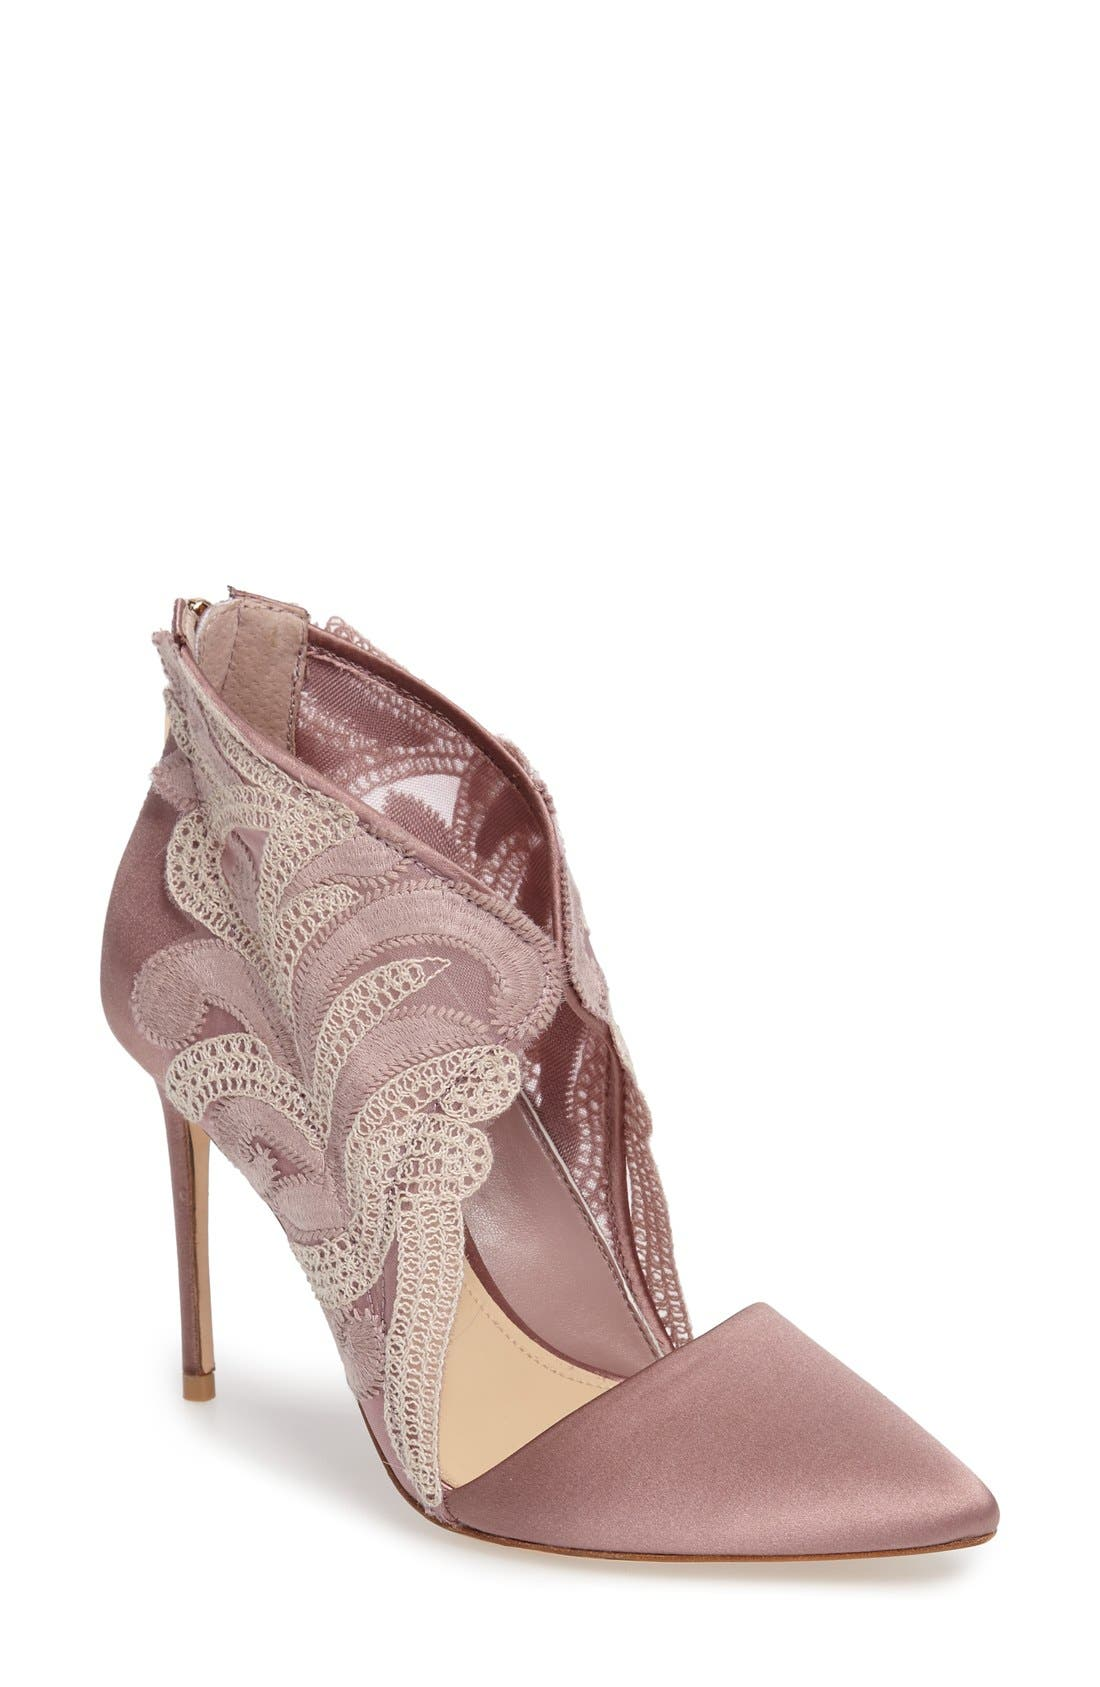 Main Image - Imagine by Vince Camuto Obin Lace Detailed Pointy Toe Pump (Women)